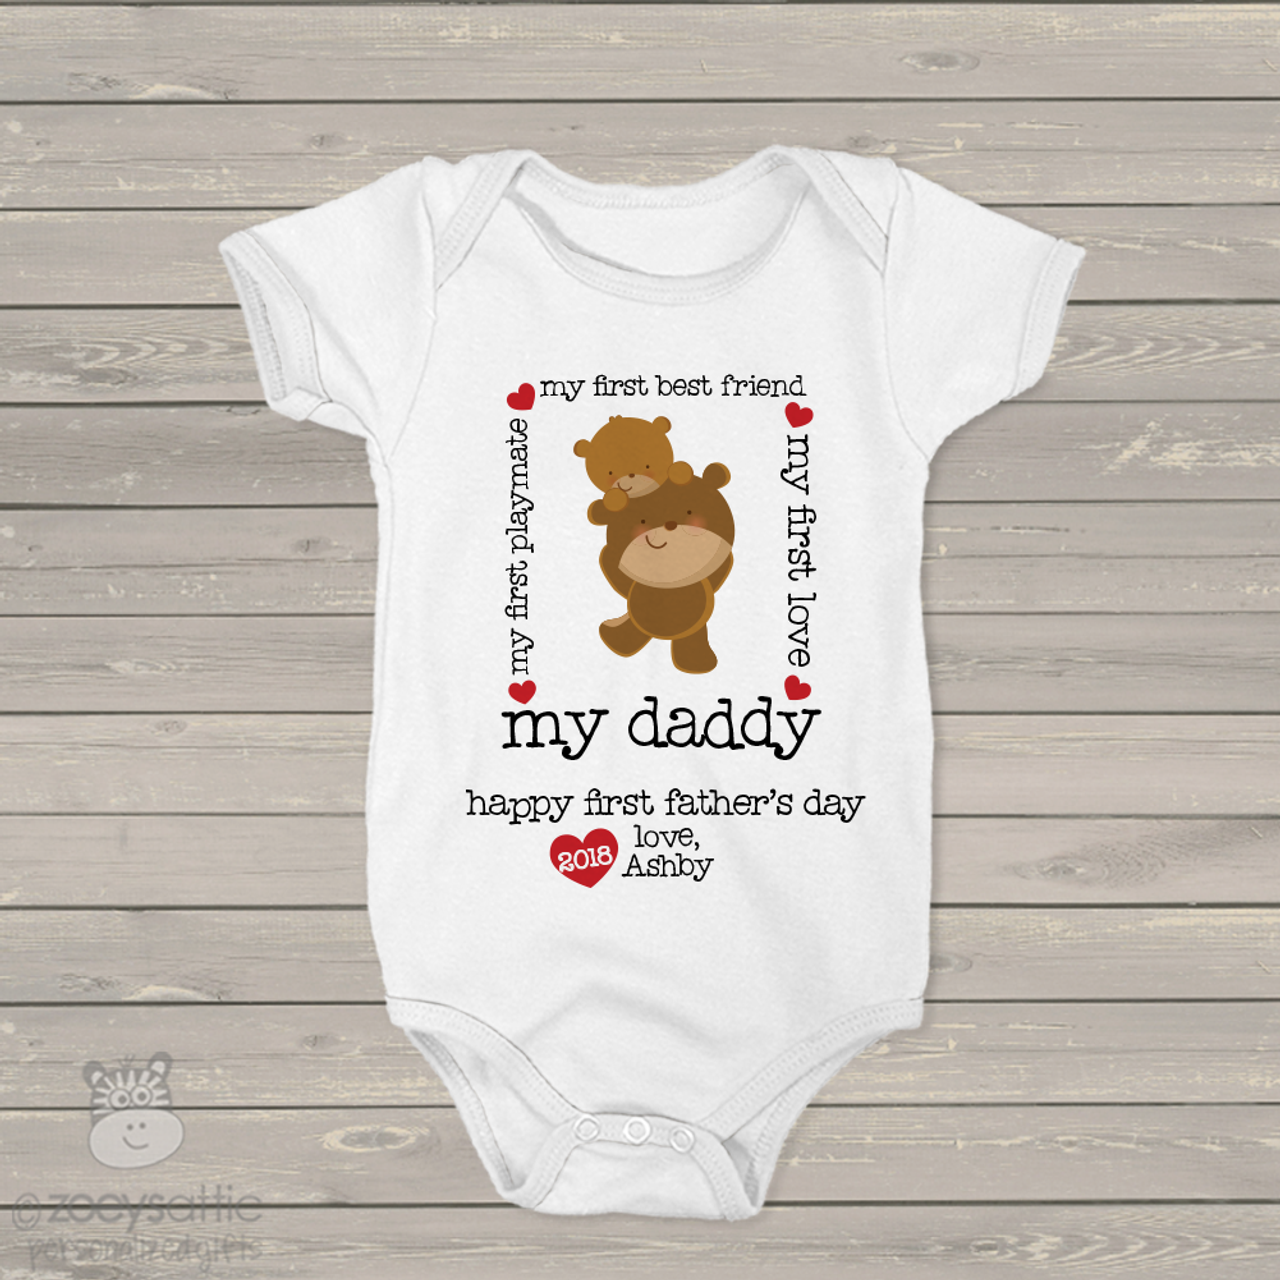 d371a9be33f Father s Day bodysuit my first best friend my daddy personalized bodysuit  or Tshirt